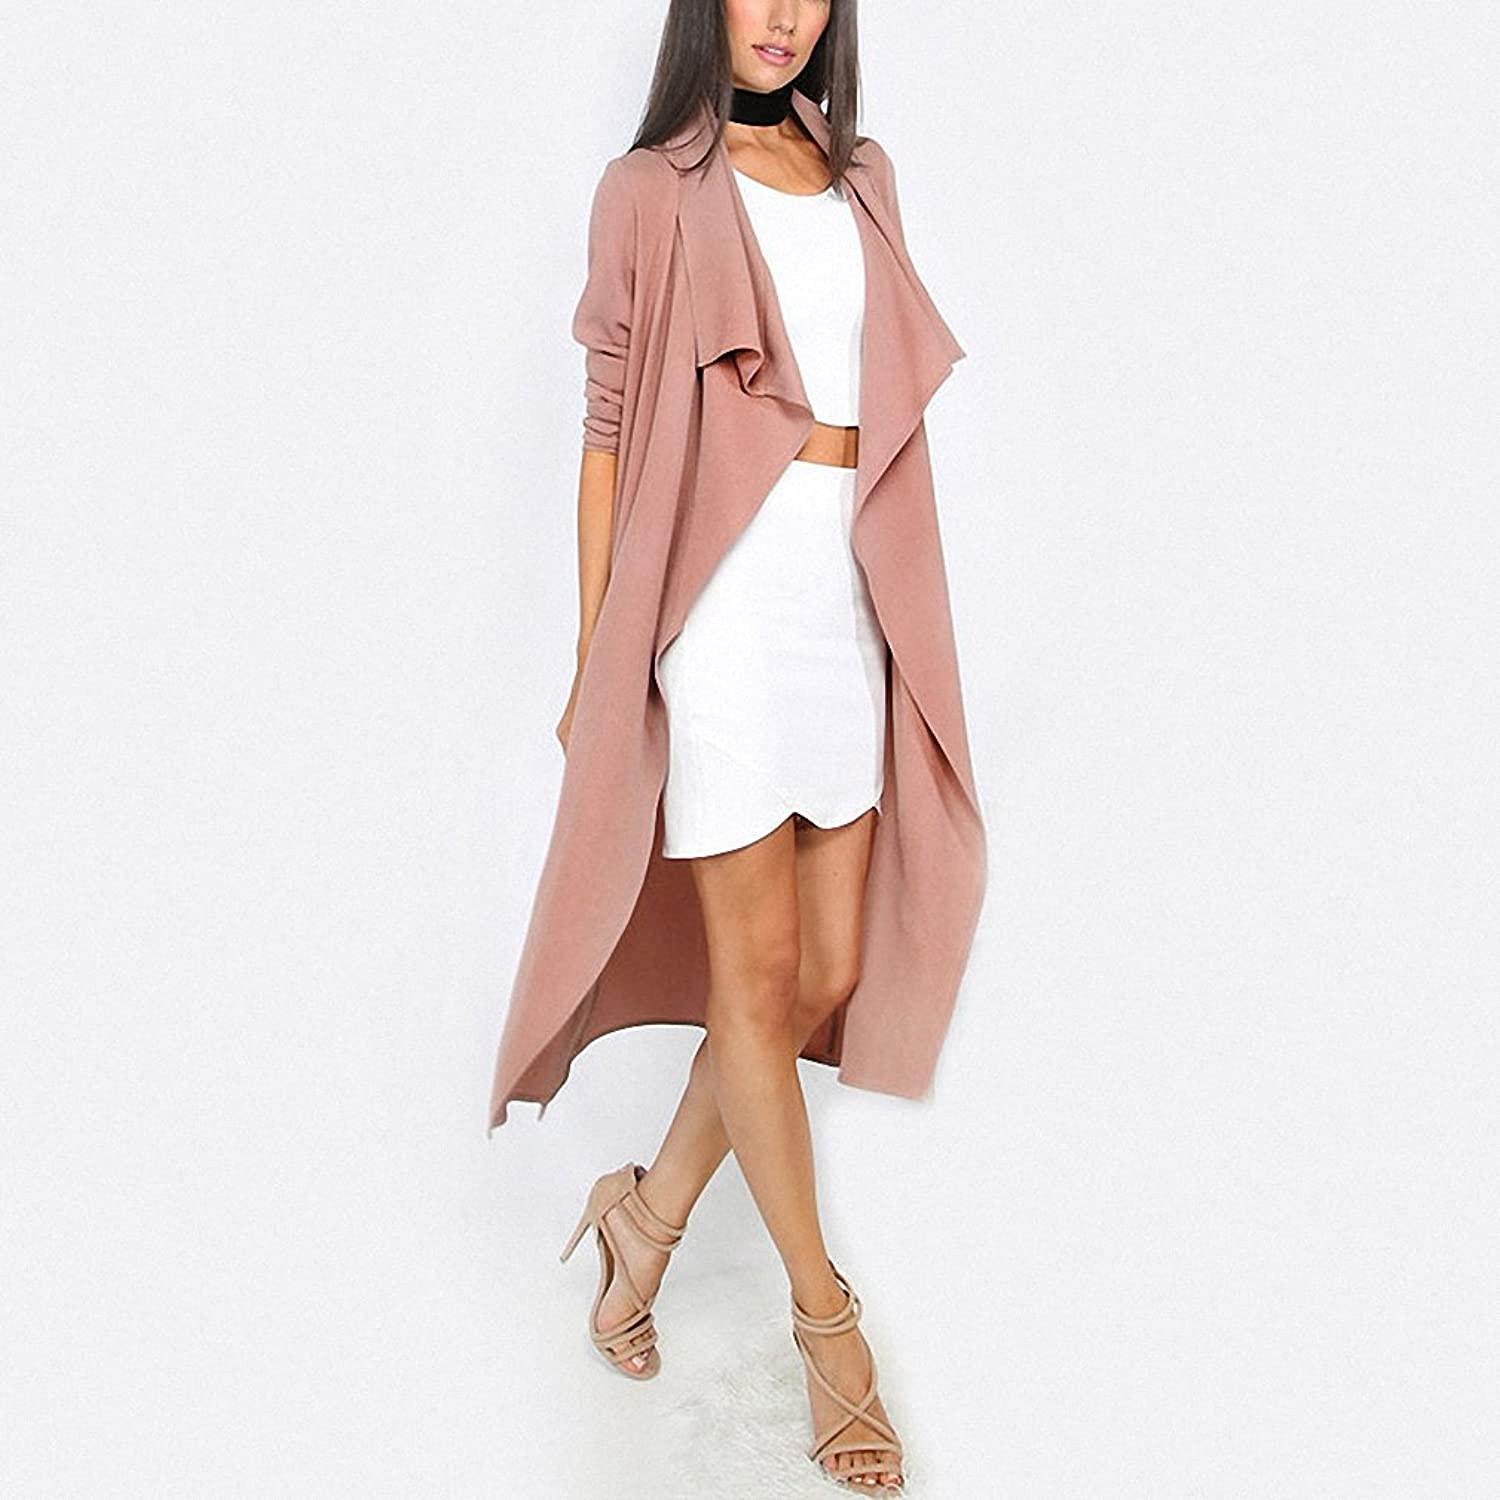 Amazon.com: SheIn Autumn Womens New Fashion Coffee Lapel Long Sleeve Trench Coat Ladies Open Front Tie Waist Casual Long Outerwear Coats: Clothing